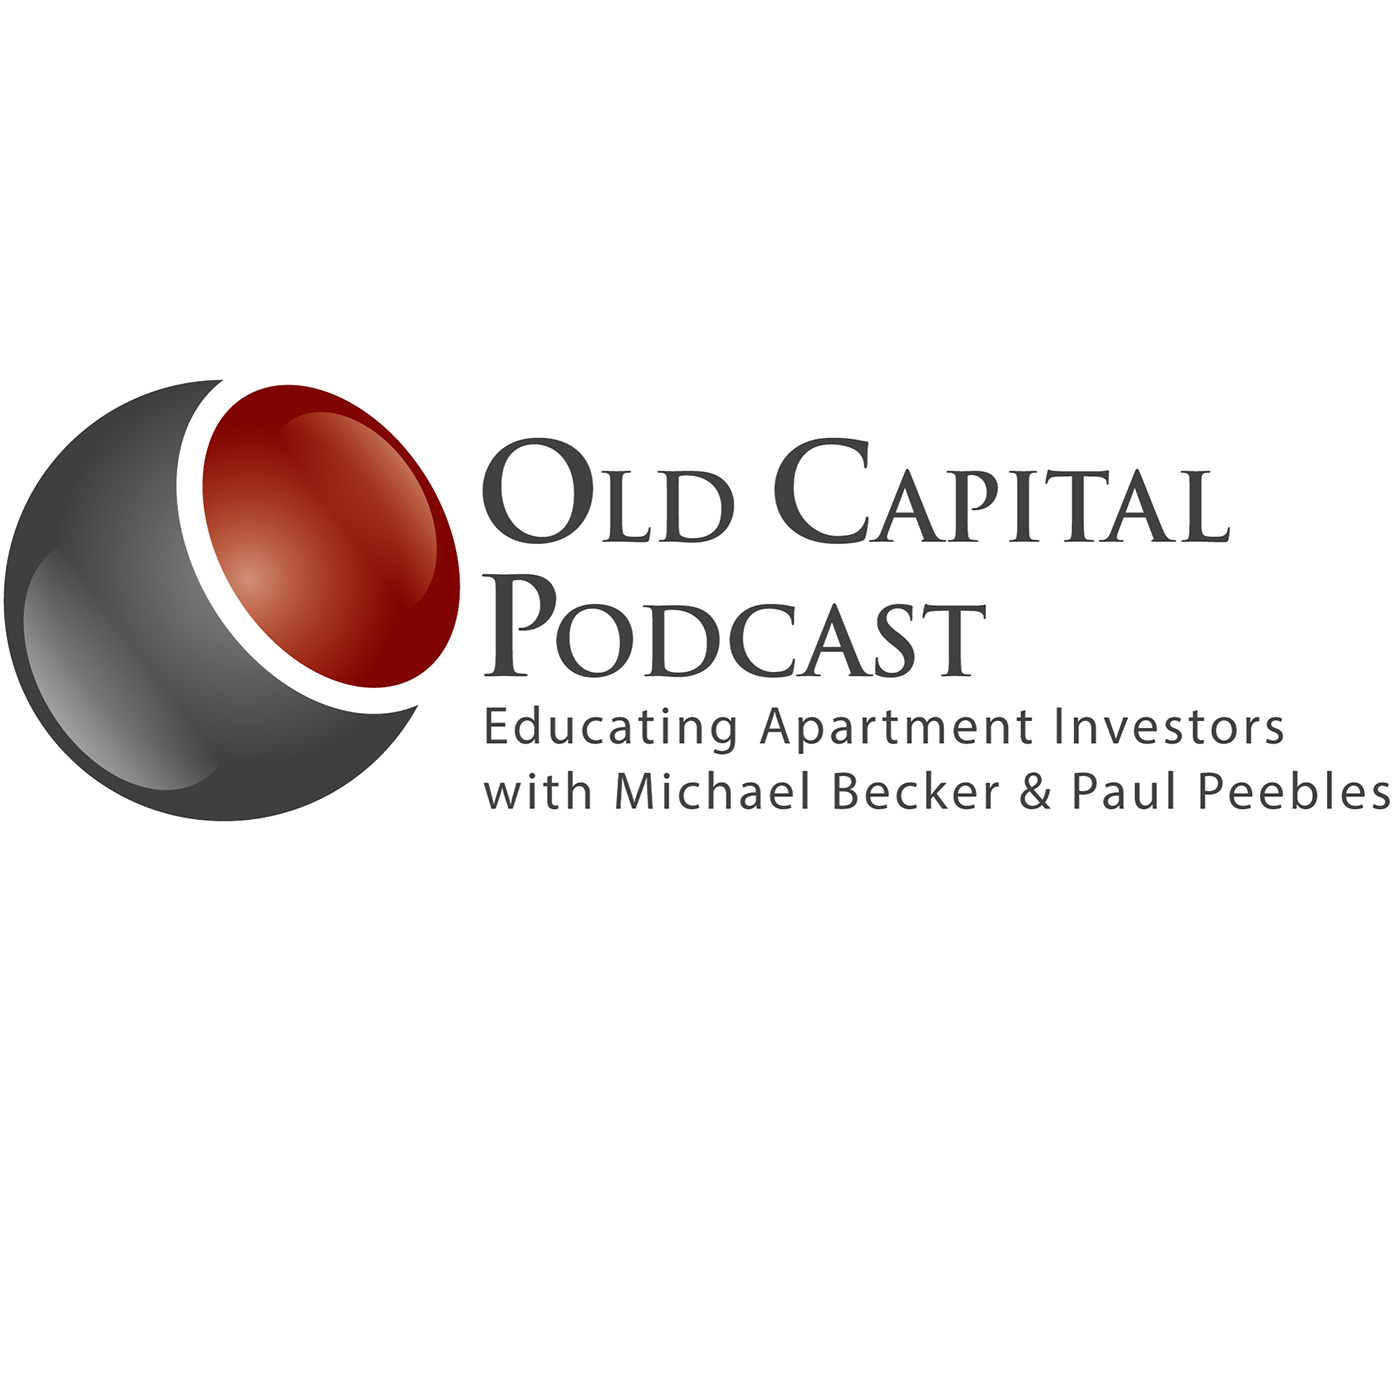 """Artwork for ASK MIKE MONDAYS - Mike, you have motivated me to buy apartments. I want to be like Michael Becker…What are the STEPS? """"Show me the MONEY! Raising capital, the right way."""" (Episode 3 of 5)"""